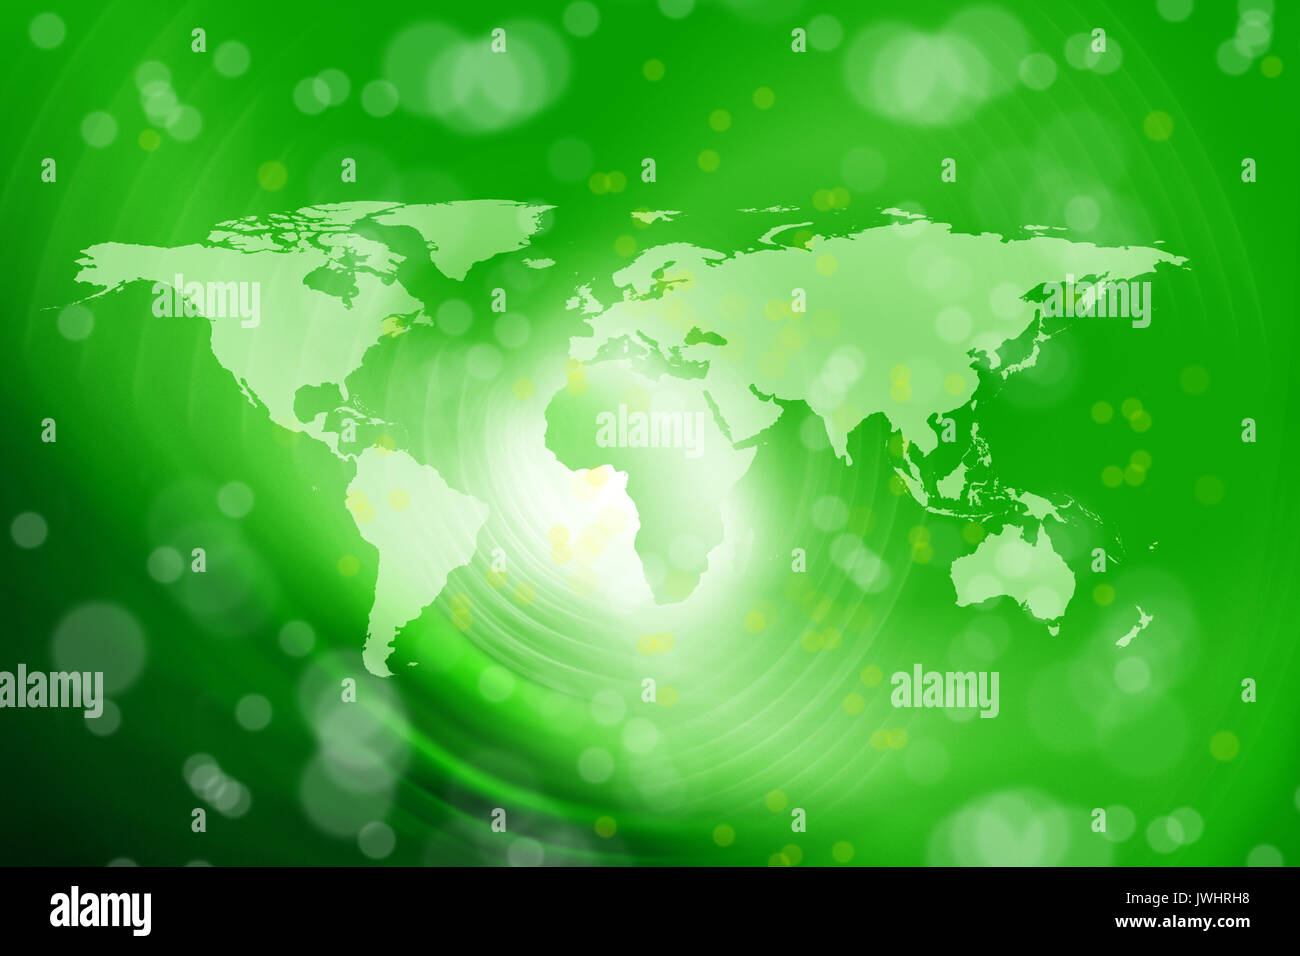 Creative world map abstract background stock photos creative world background image of abstract lights and world map manipulation nasa world map image layered and gumiabroncs Image collections